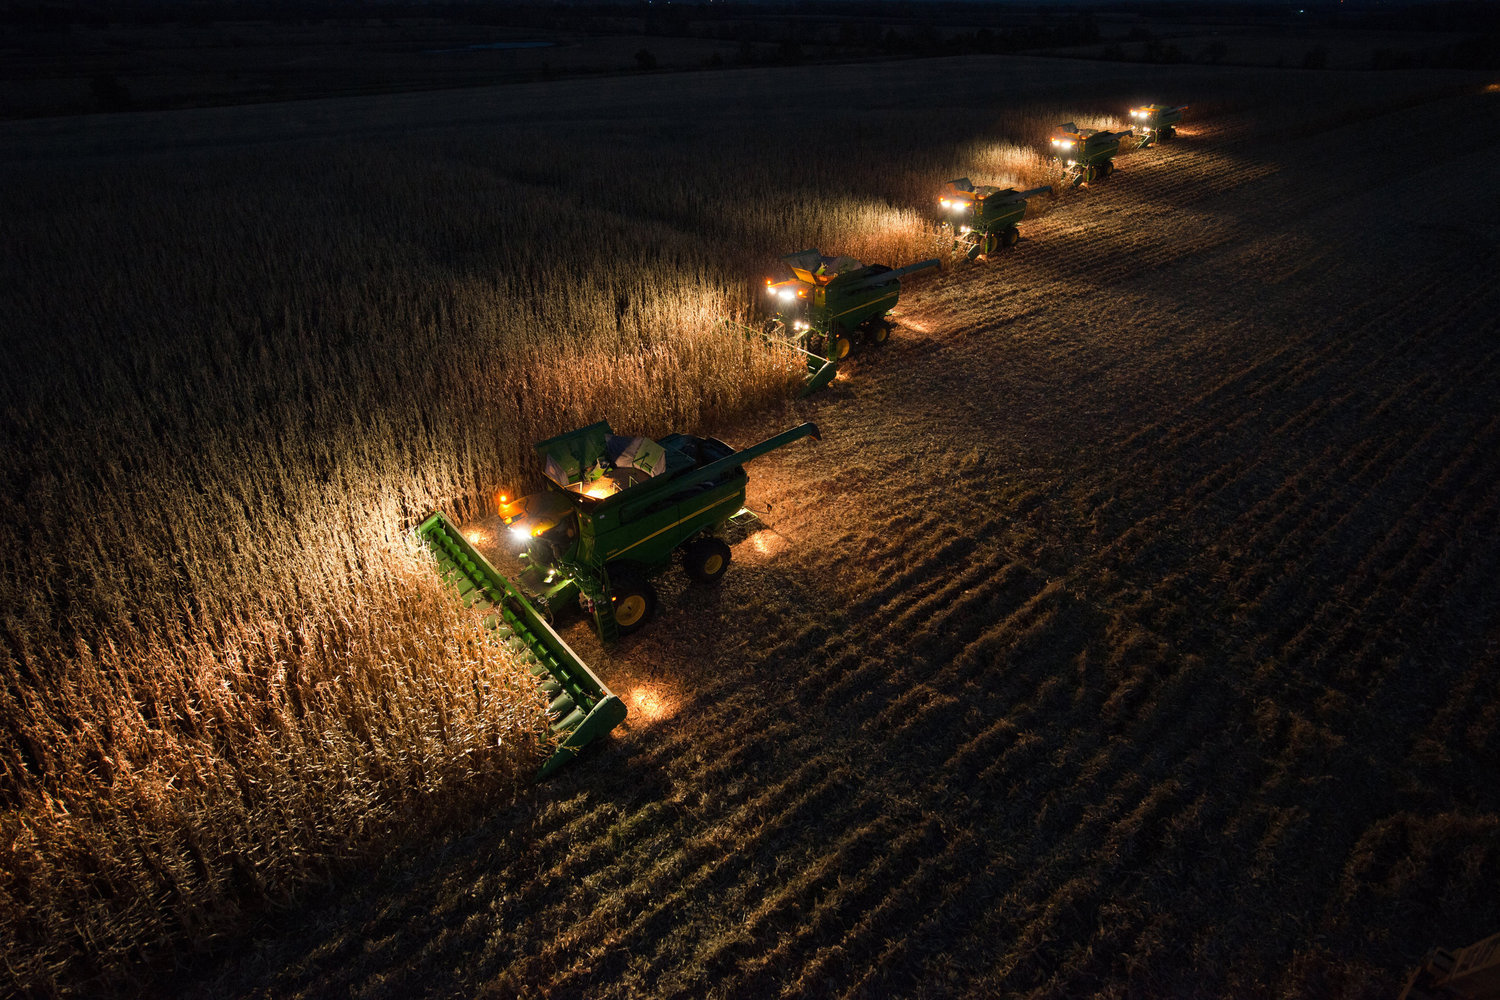 Fall Harvest Wallpaper Backgrounds 10 Night Farming Photos That Show Production Doesn T Stop